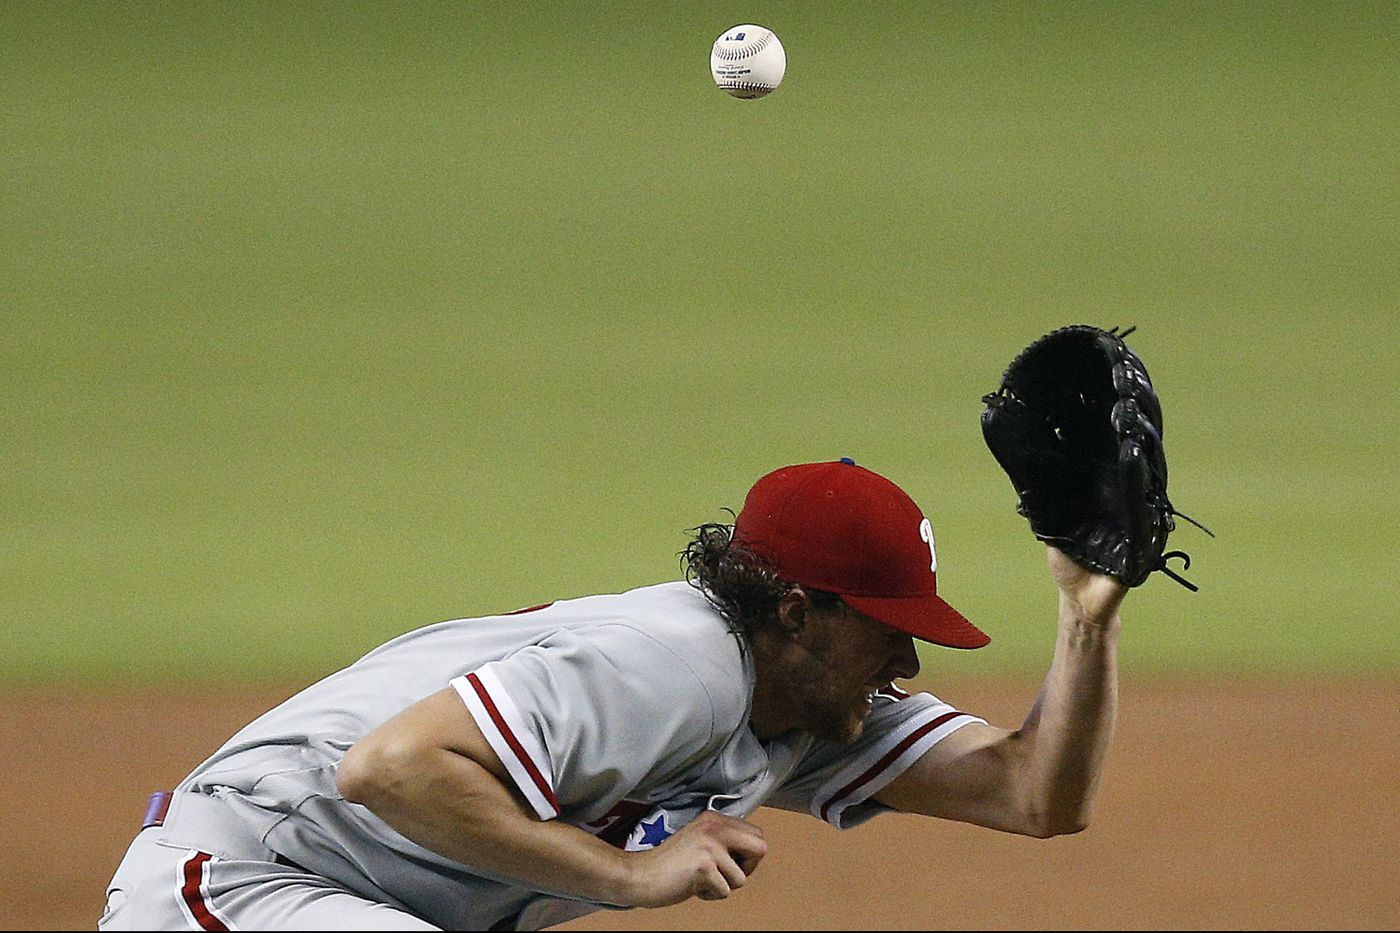 Phillies fall to Marlins despite Aaron Nola's solid outing